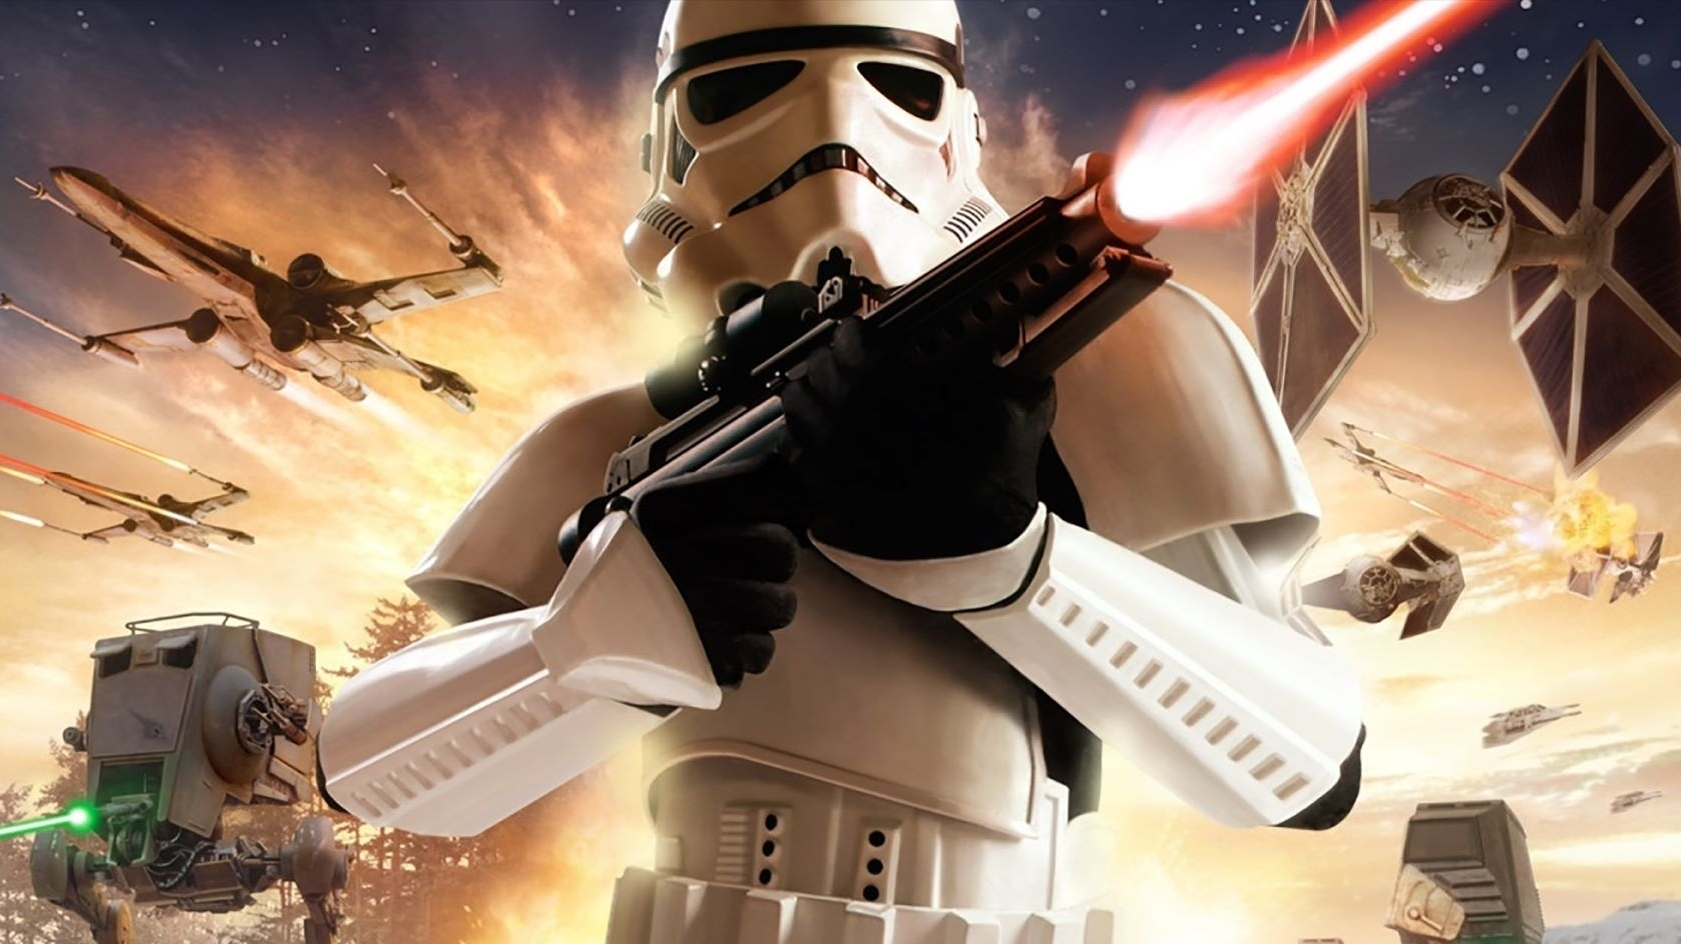 Classic Star Wars Battlefront Now On Steam And GOG, With